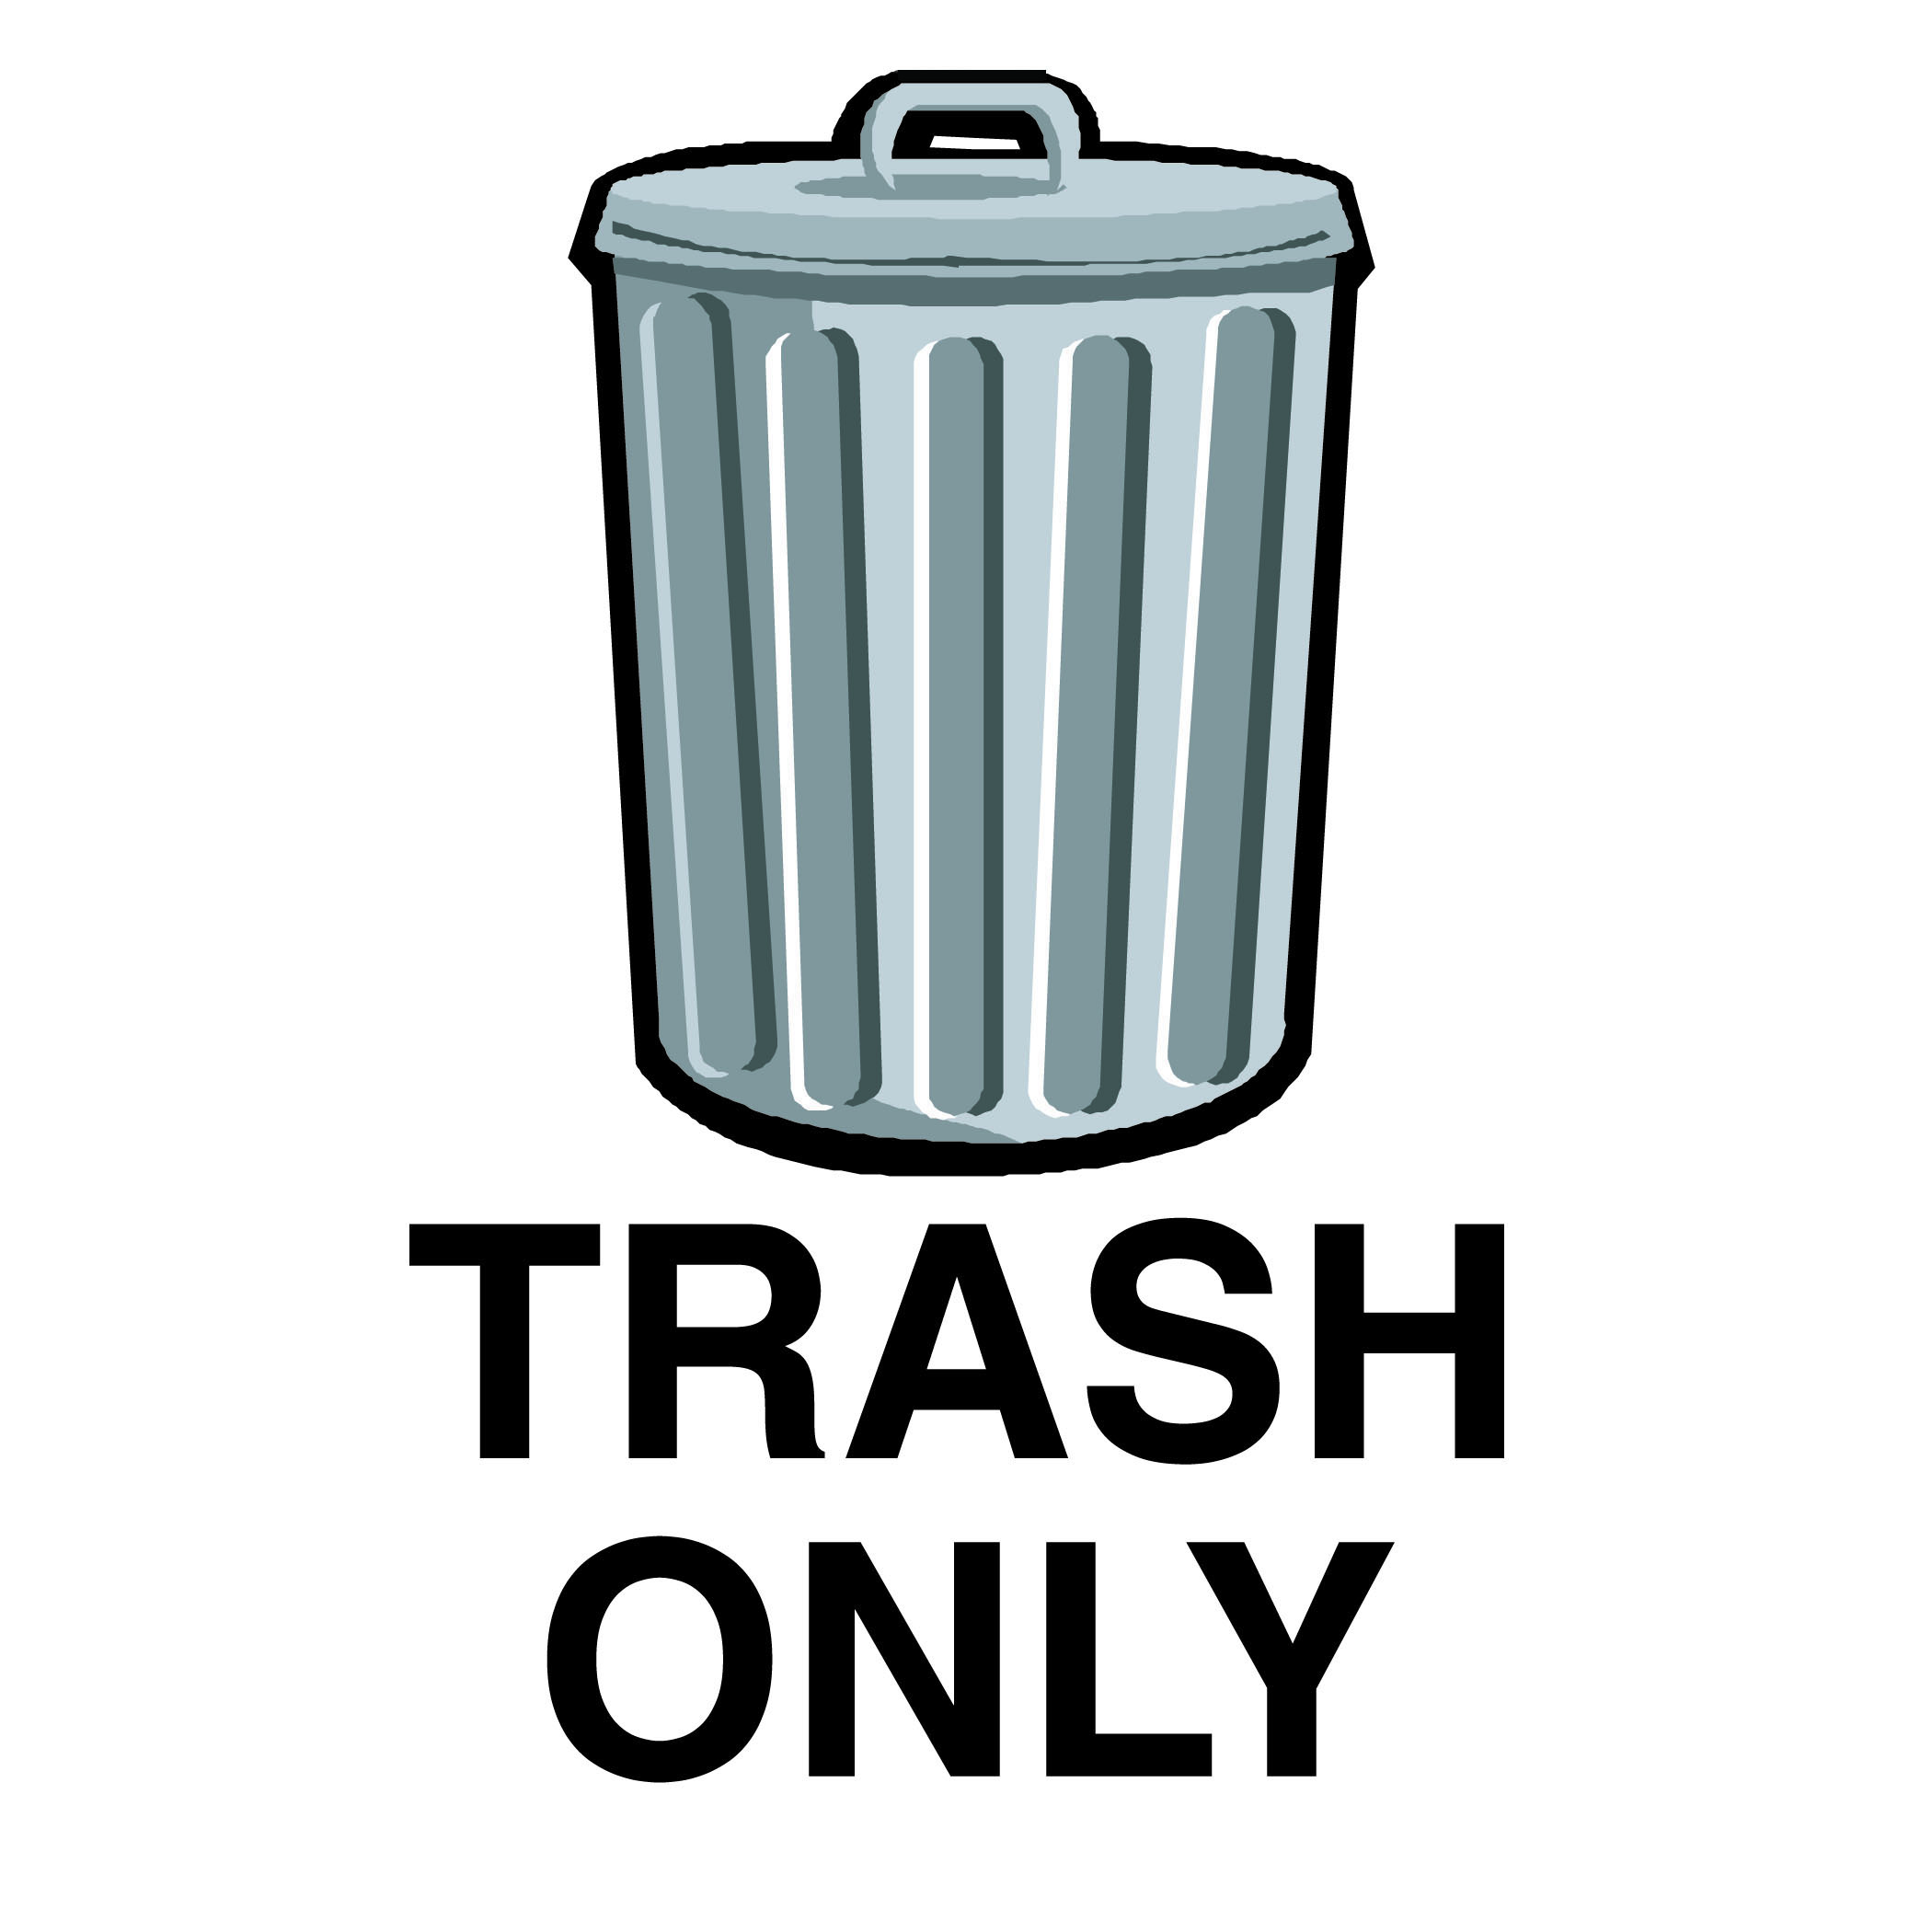 Solid waste clearinghouse clip. Garbage clipart information